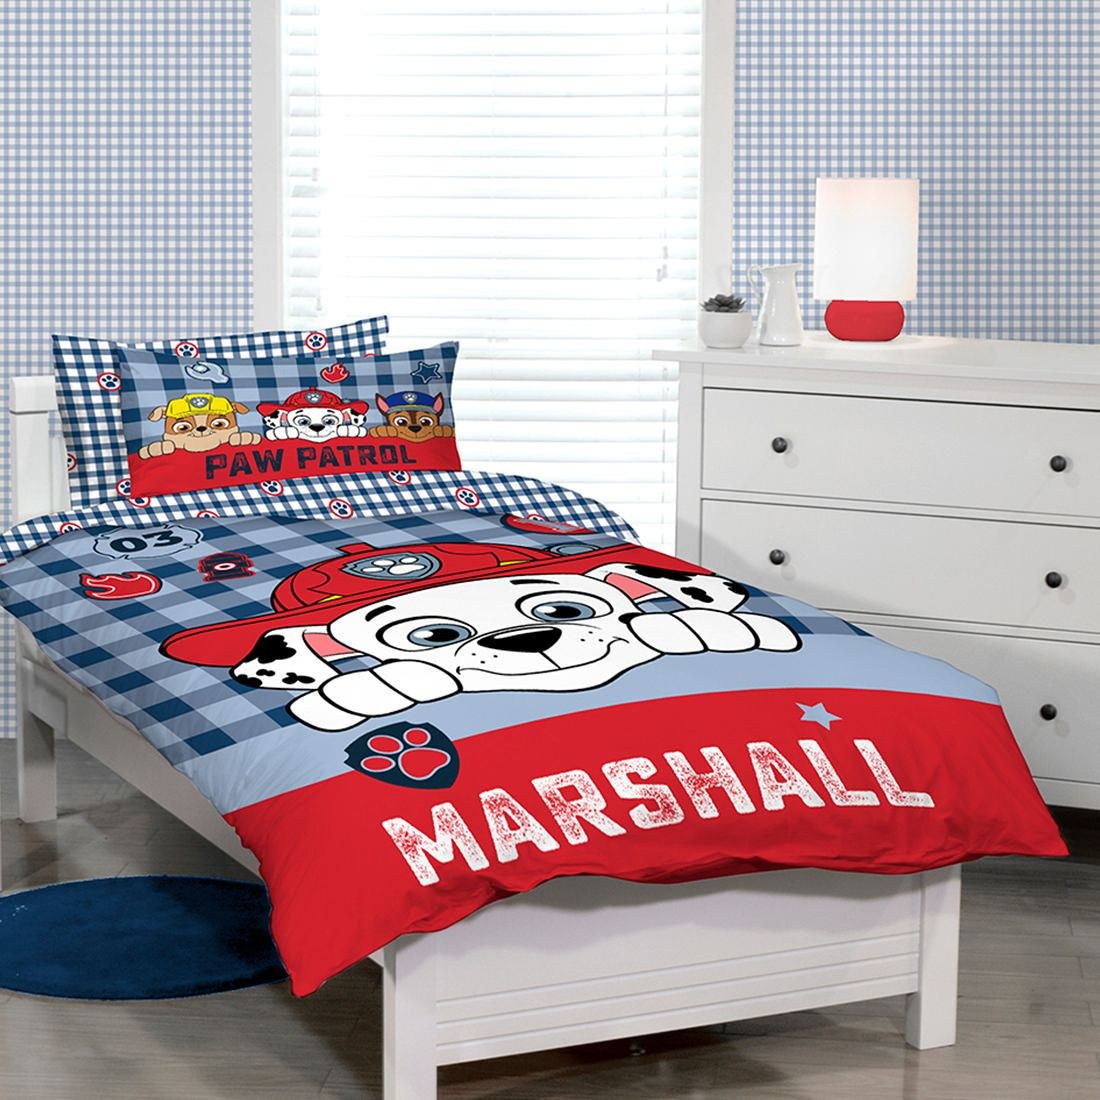 Boys Double Quilt Cover Paw Patrol Quilt Cover Set